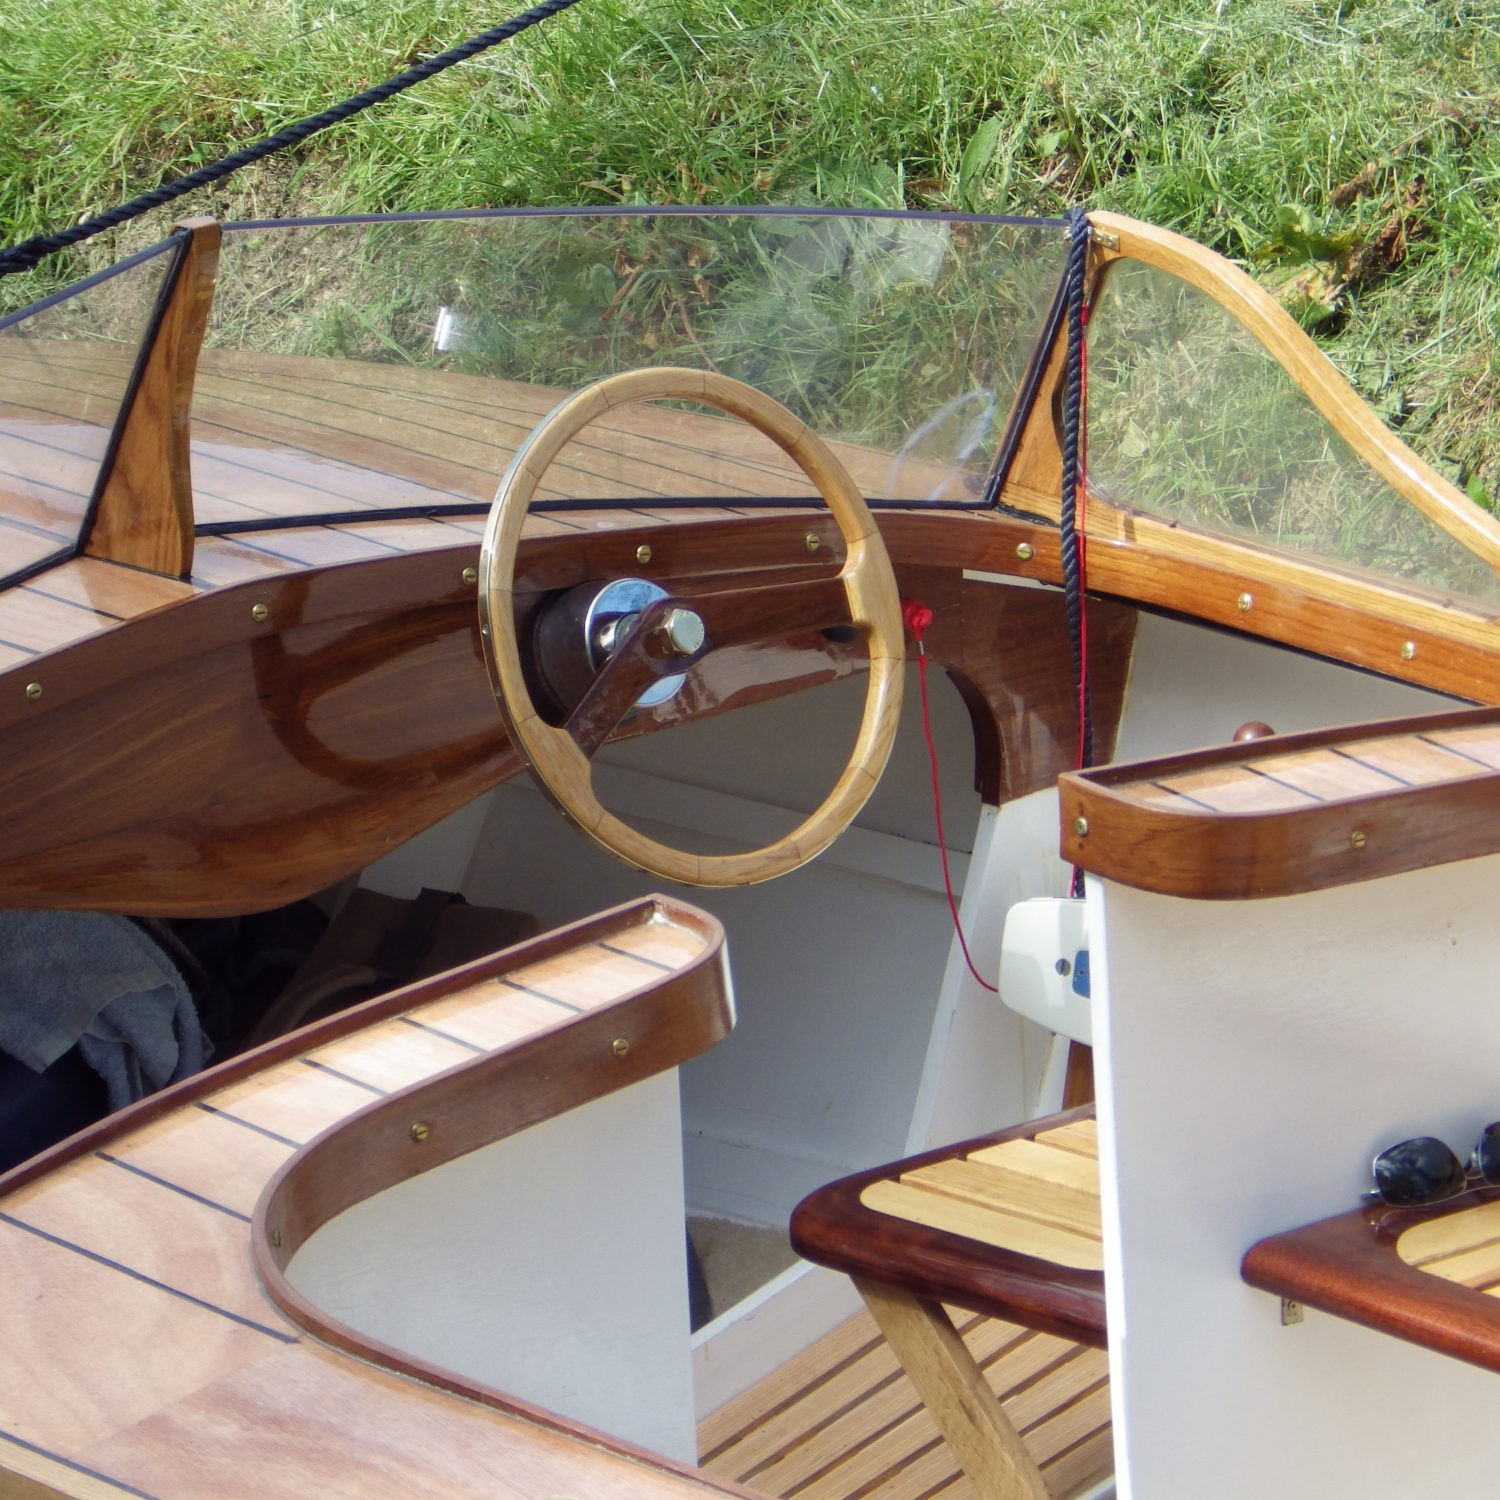 Boatbuilder services Cirencester UK Dan Lee Boatbuilding Lady S cockpit 1950's classic wooden boat